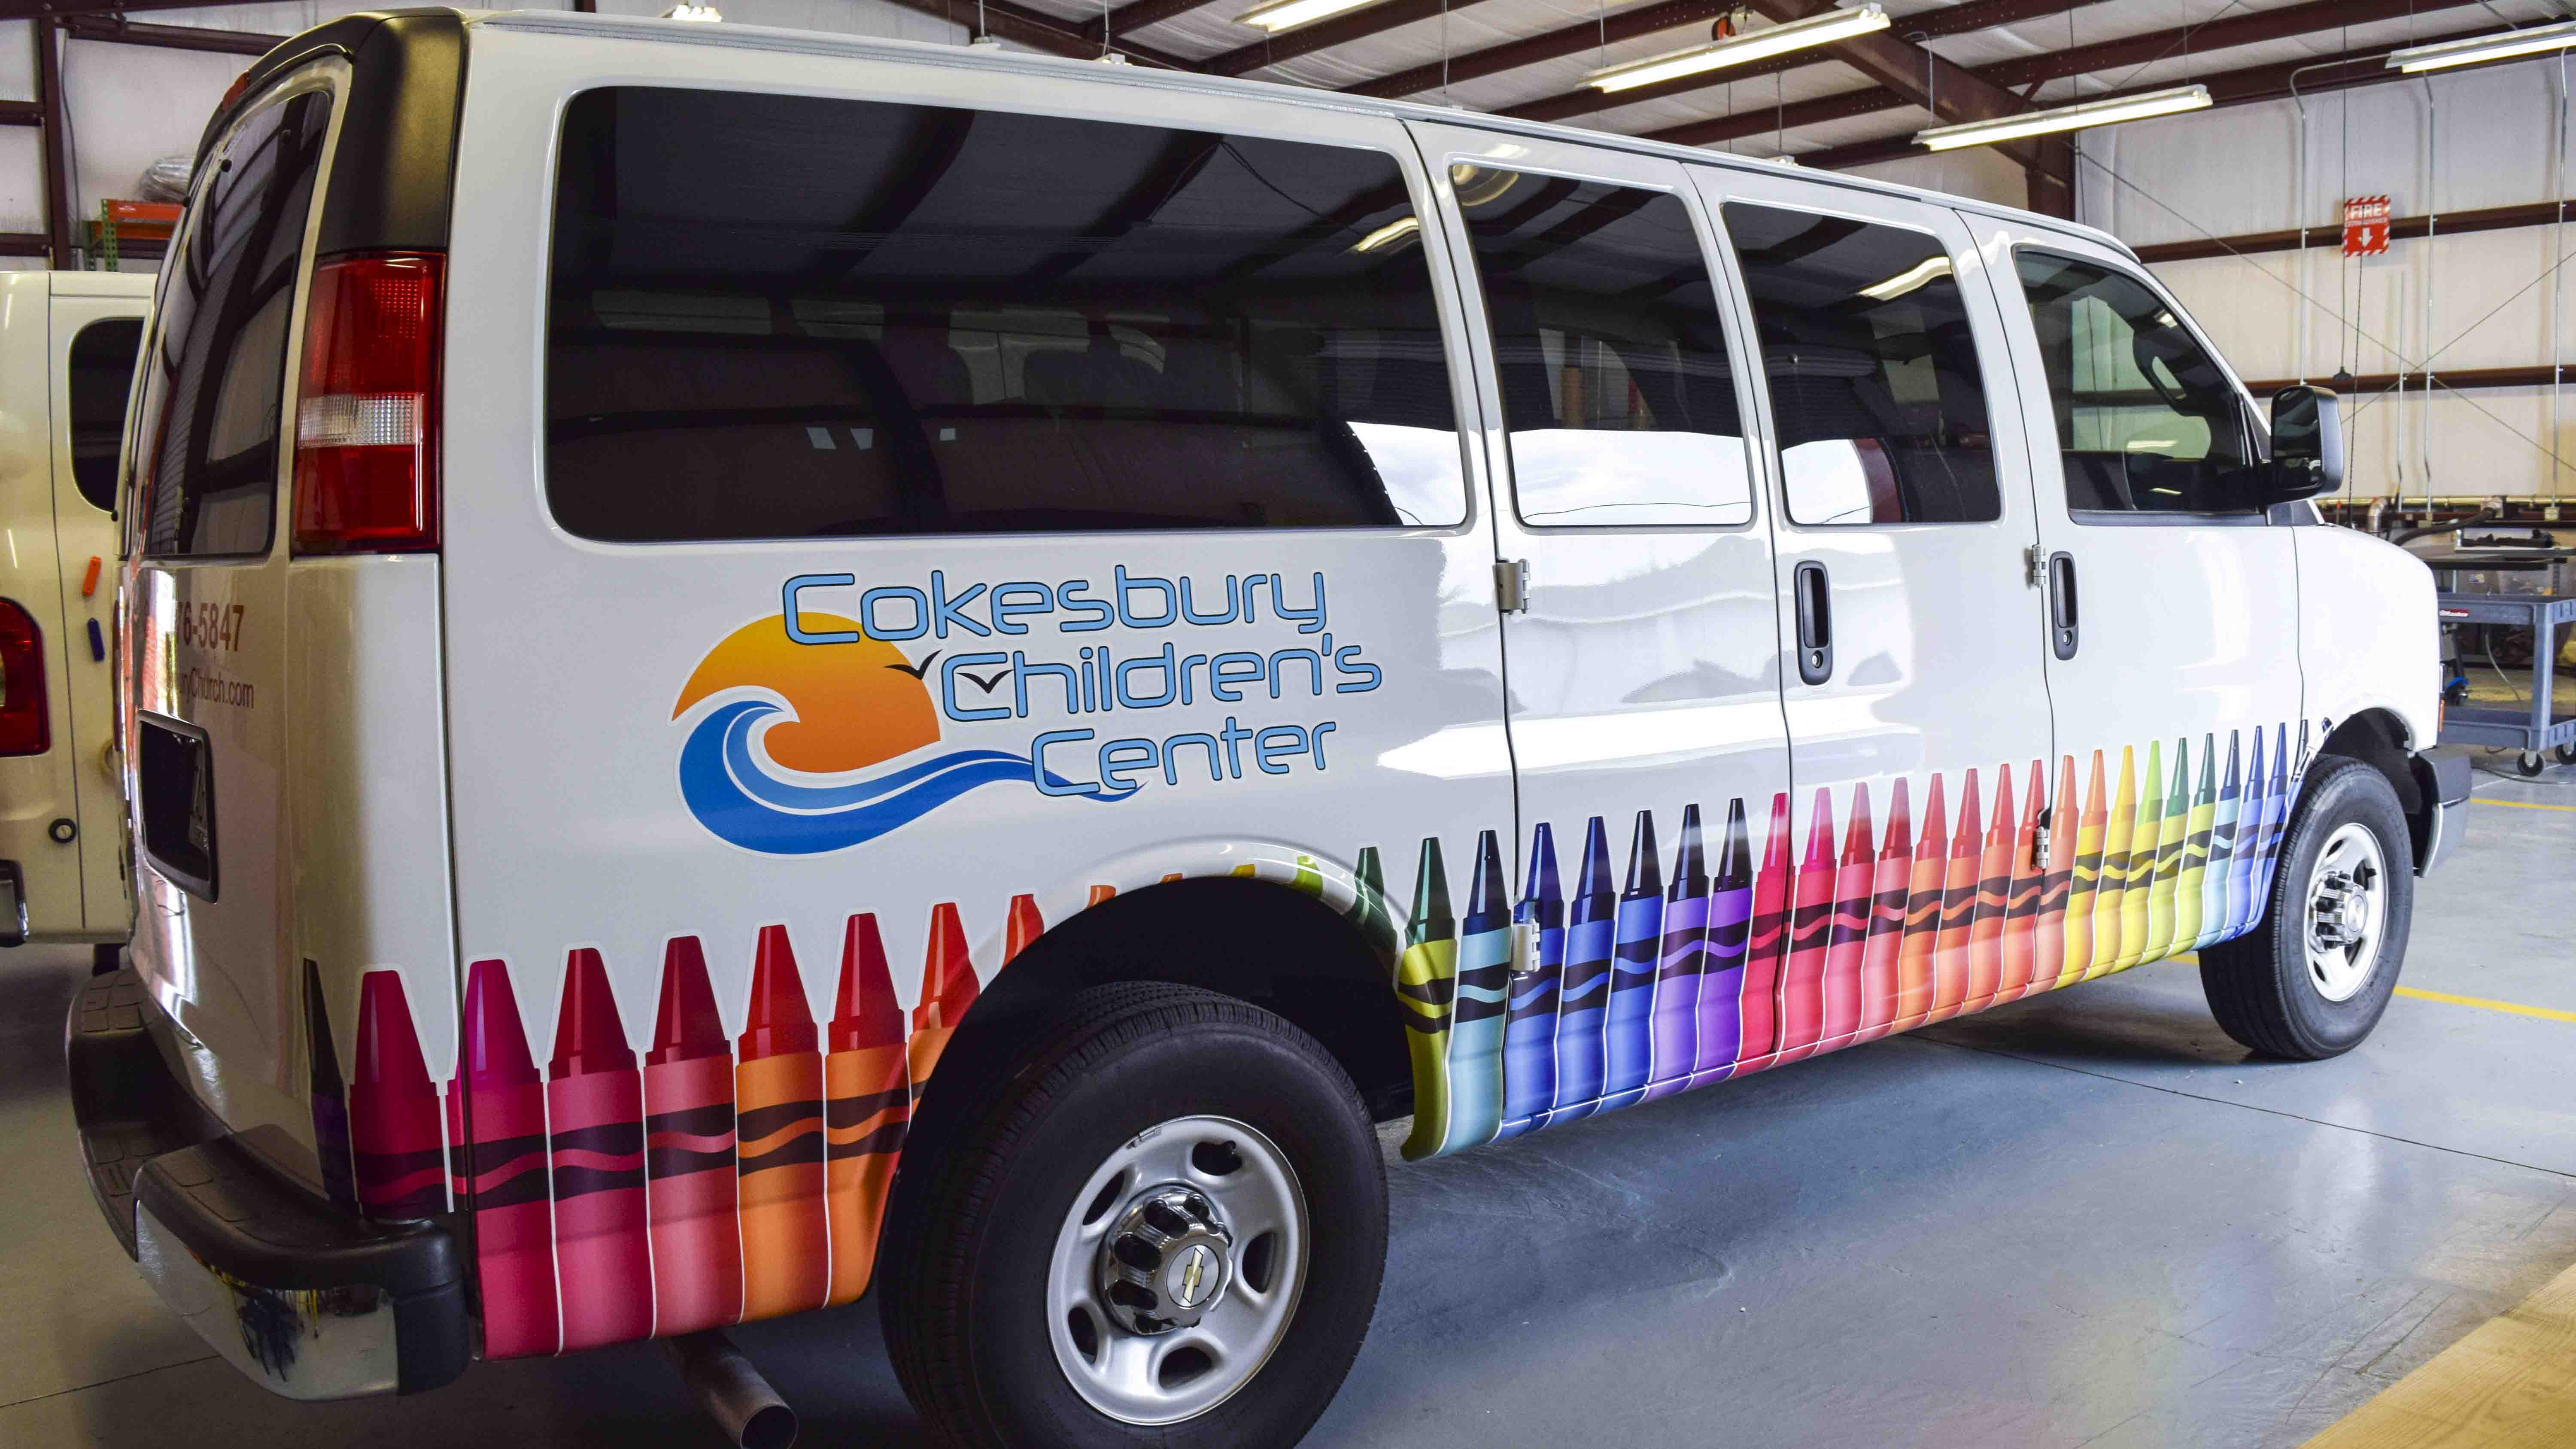 Pensacola Sign - Vehicle Graphics - Graphics for Cokesbury Children's Center